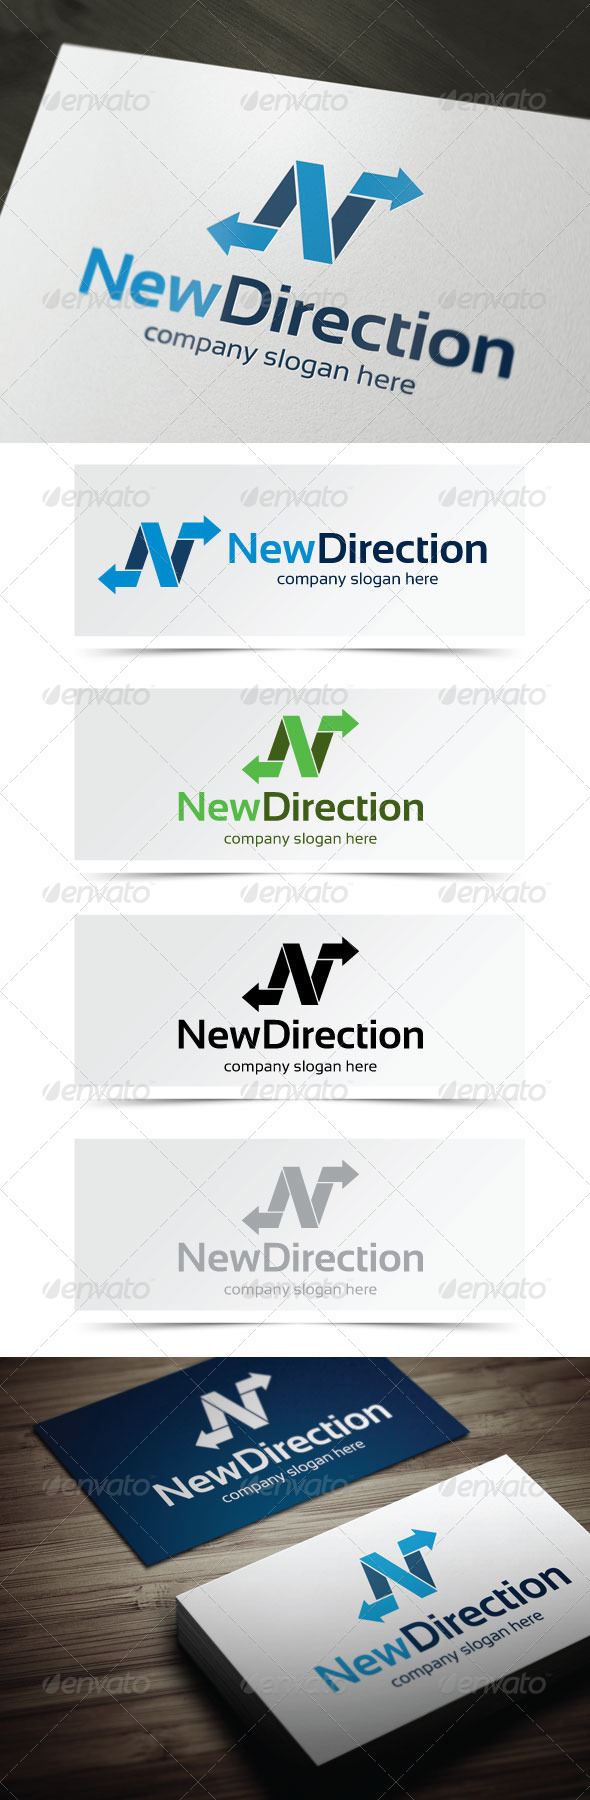 GraphicRiver New Direction 5275447